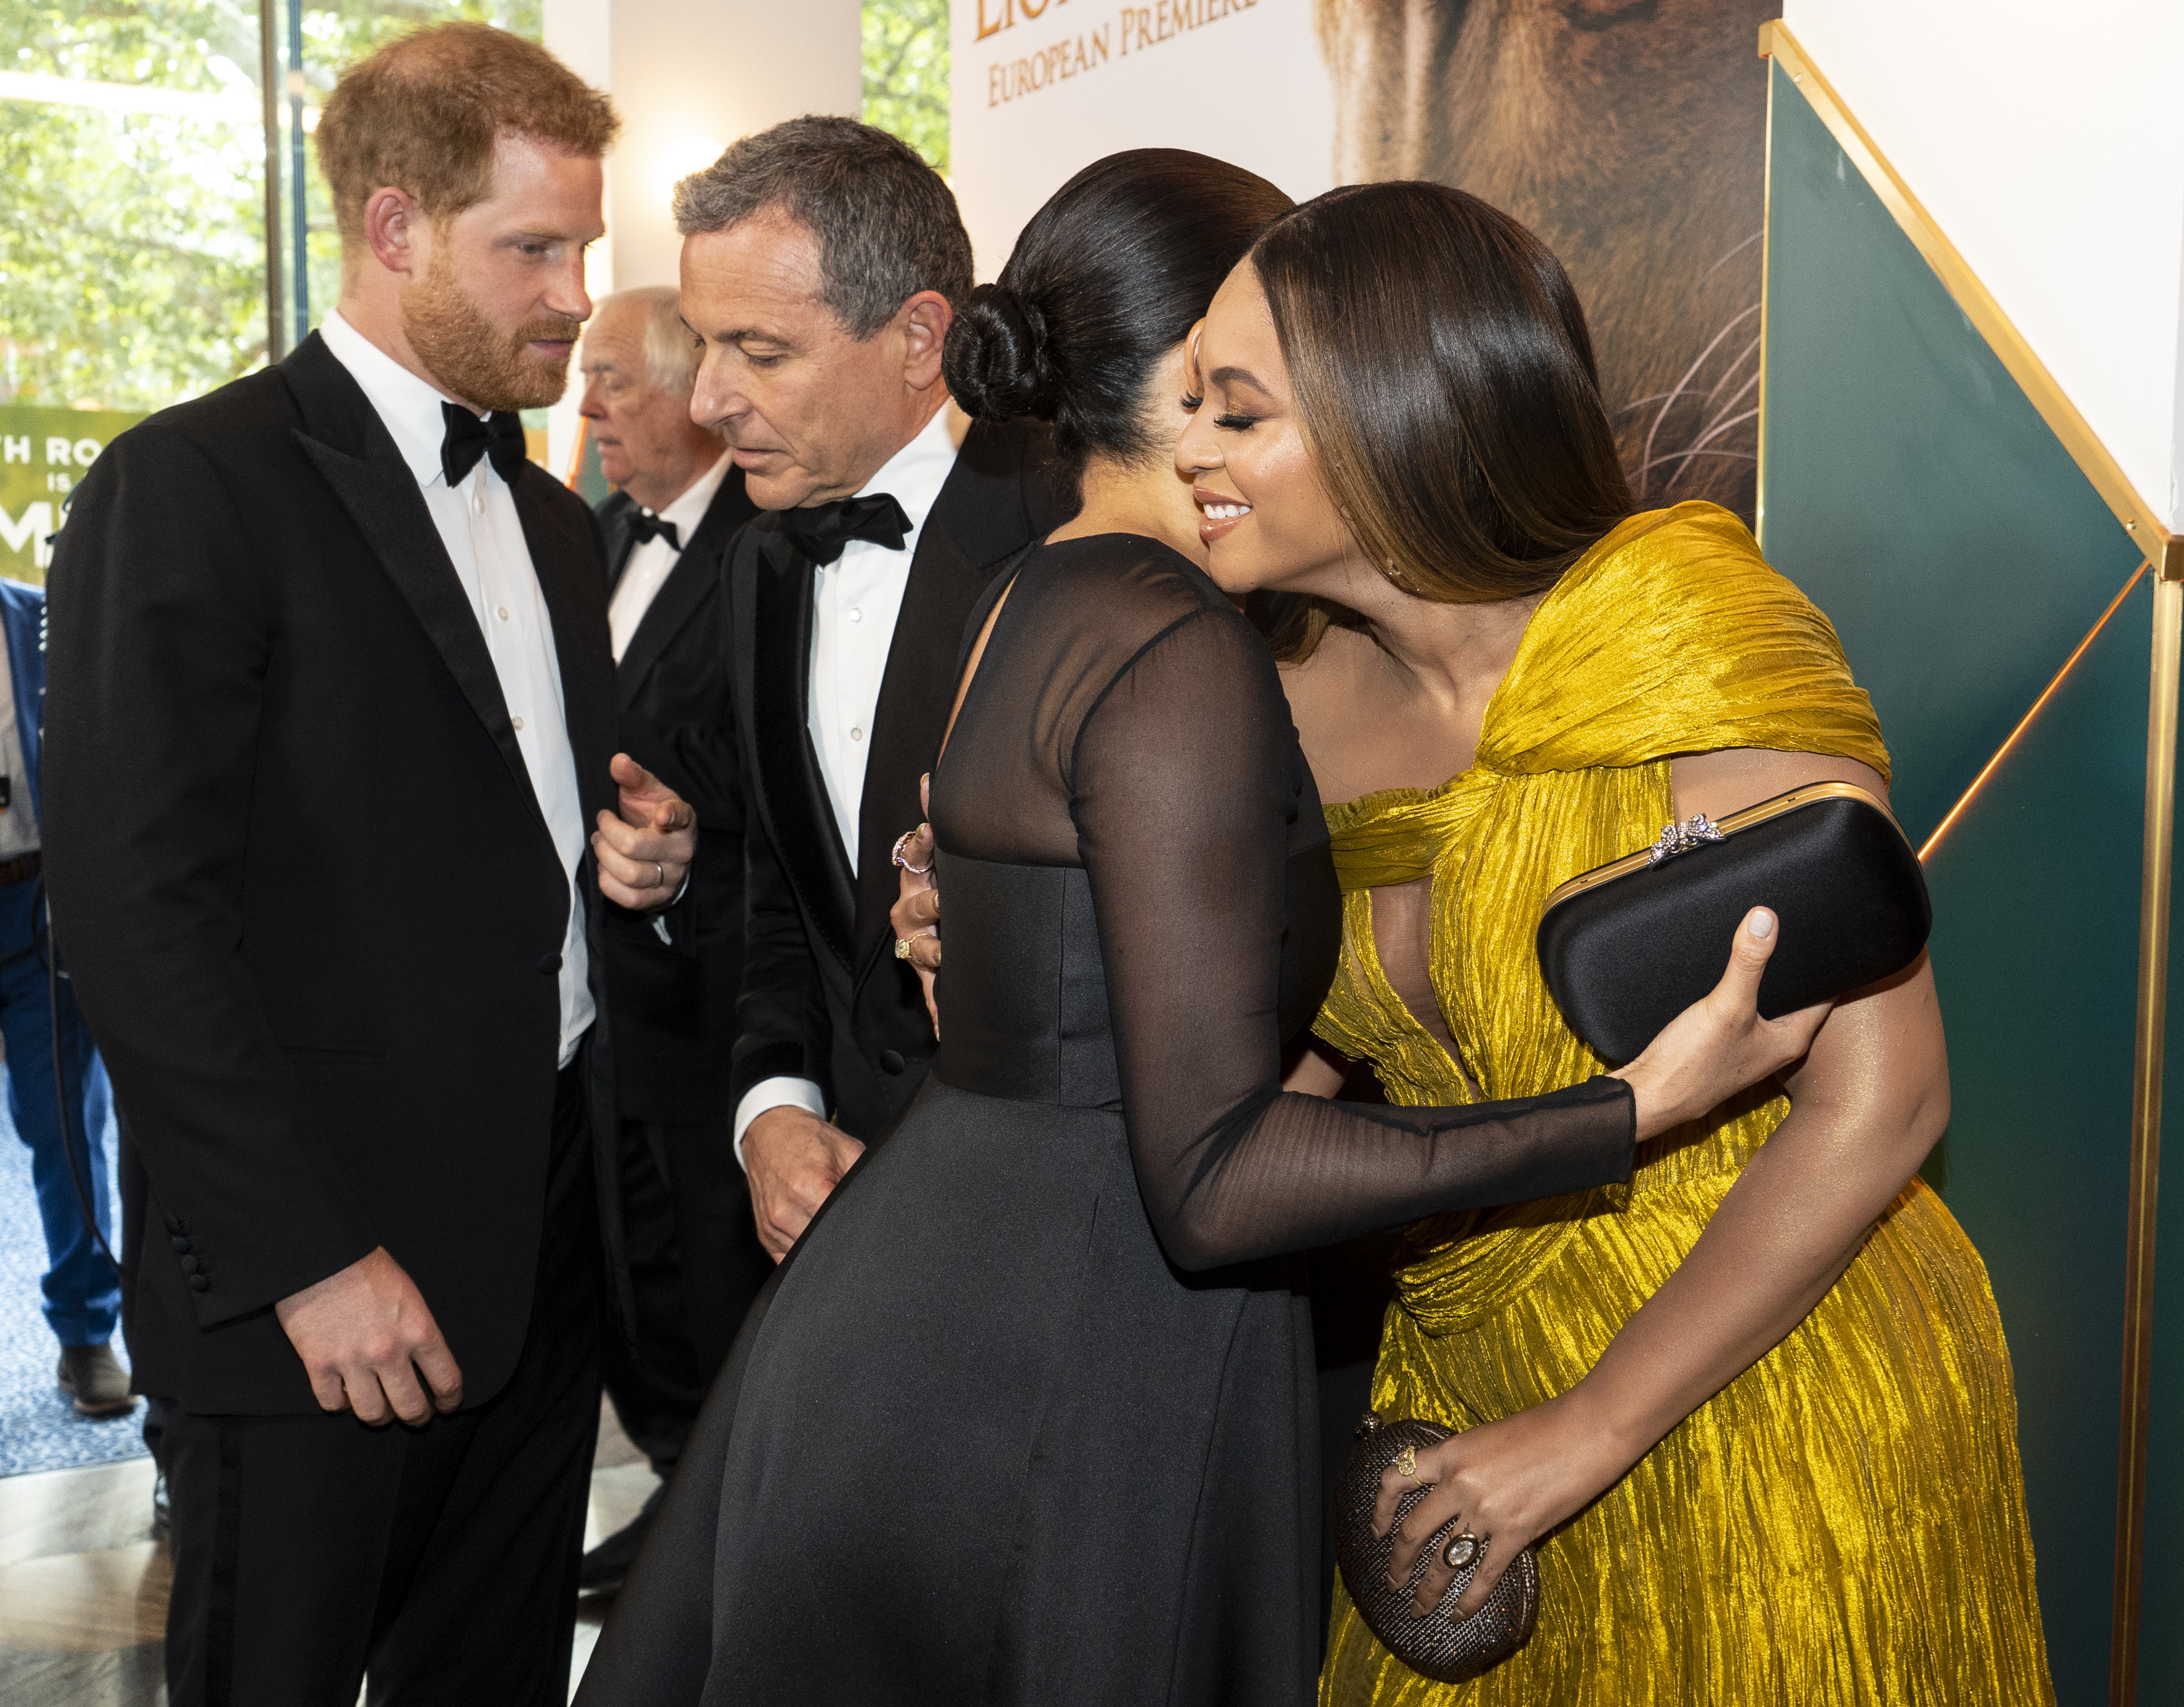 """LONDON, ENGLAND - JULY 14: Prince Harry, Duke of Sussex (L) chats with Disney CEO Robert Iger as Meghan, Duchess of Sussex (2nd R) embraces Beyonce Knowles-Carter (R) as they attend the European Premiere of Disney's """"The Lion King"""" at Odeon Luxe Leicester Square on July 14, 2019 in London, England.  (Photo by Niklas Halle'n-WPA Pool/Getty Images)"""